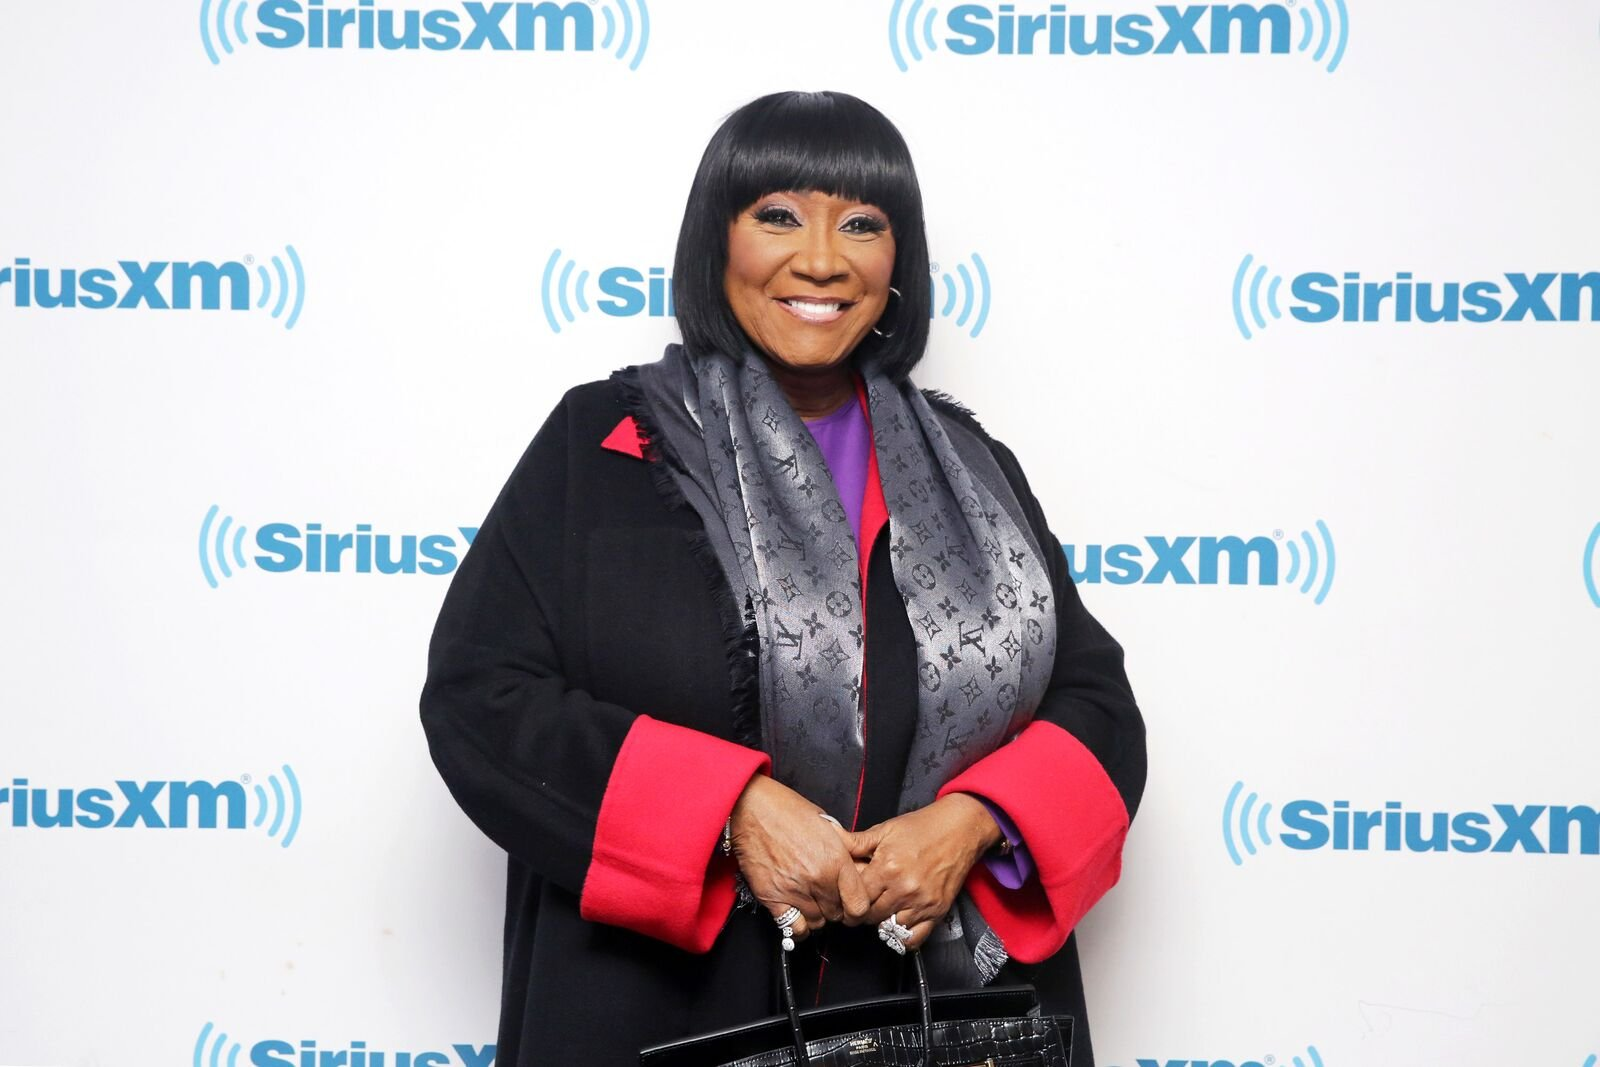 Patti LaBelle visits SiriusXM Studios on March 20, 2018 in New York City | Photo: Getty Images